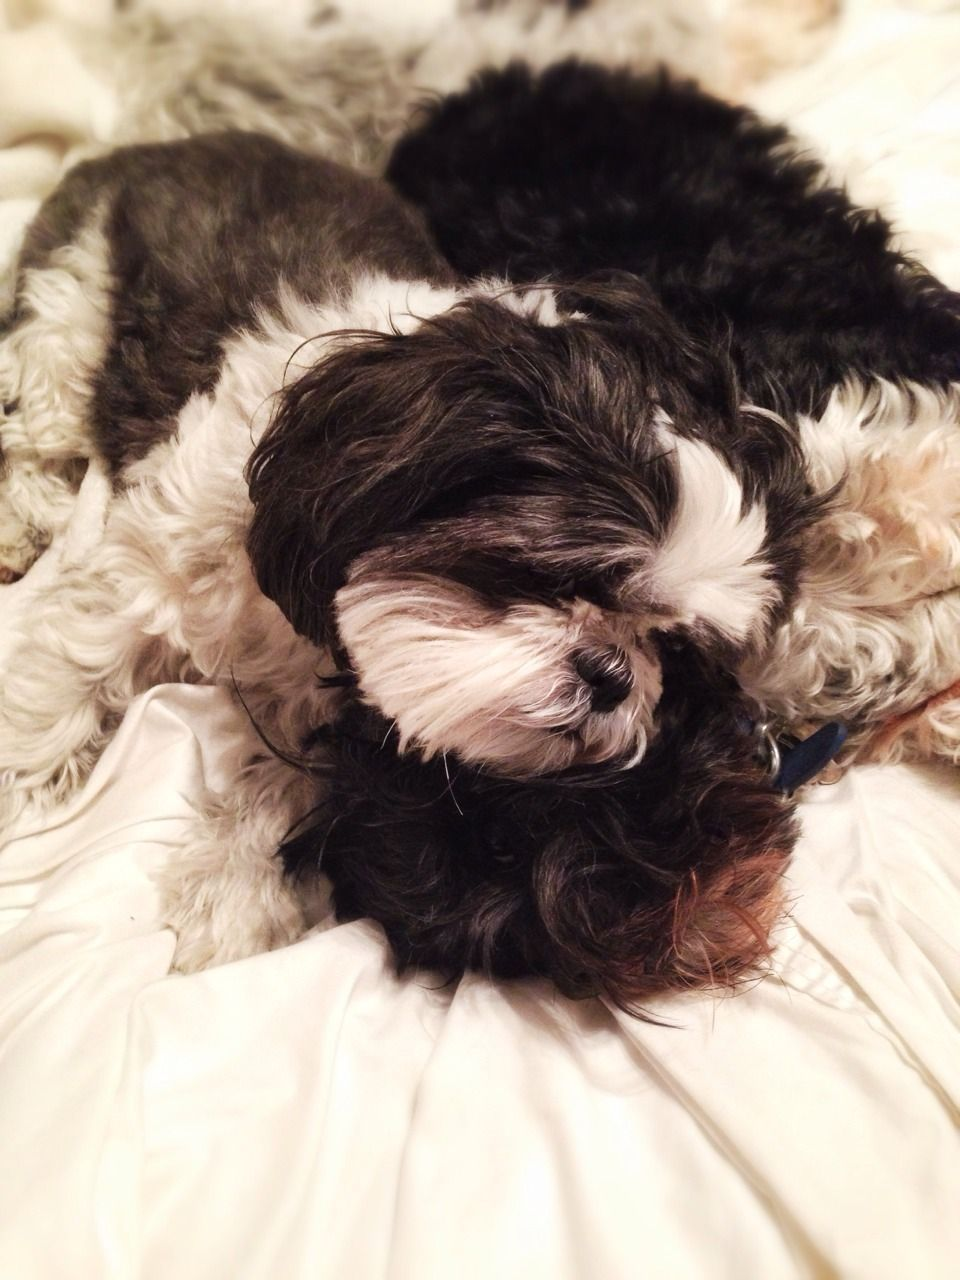 Shih tzu sleeping sister and brother cute source